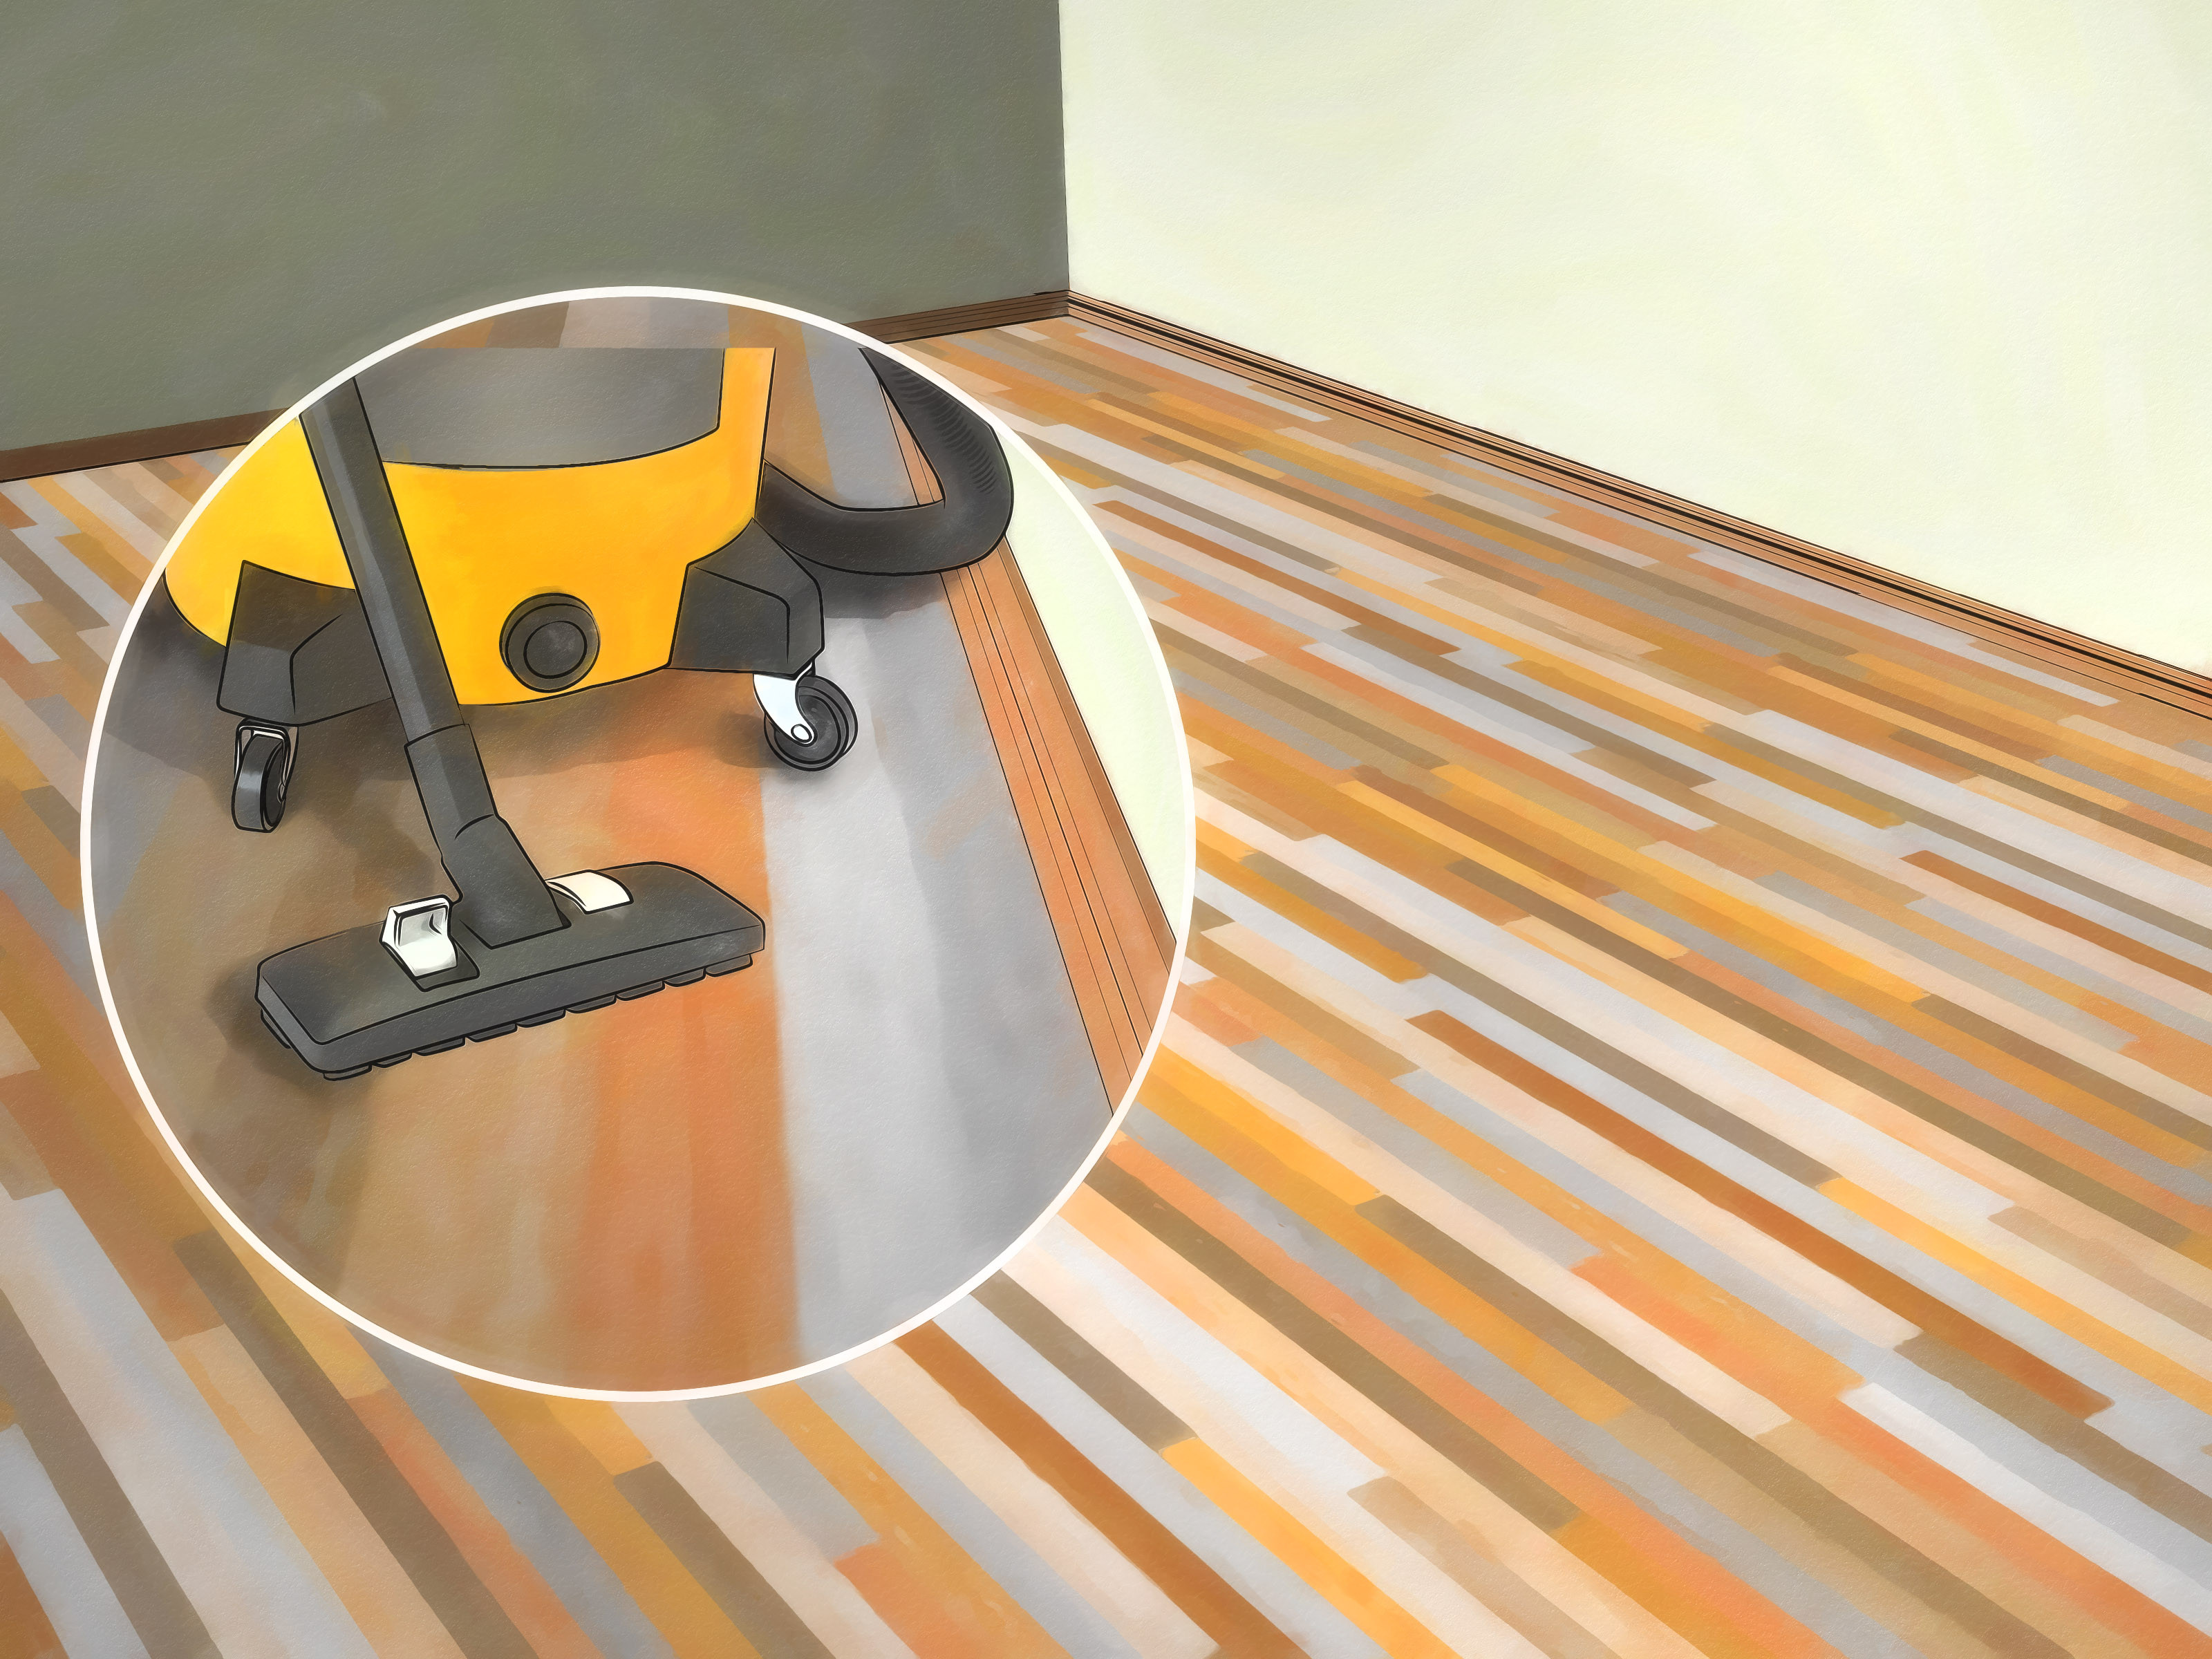 hardwood flooring questions of how to sand hardwood floors with pictures wikihow in sand hardwood floors step 22